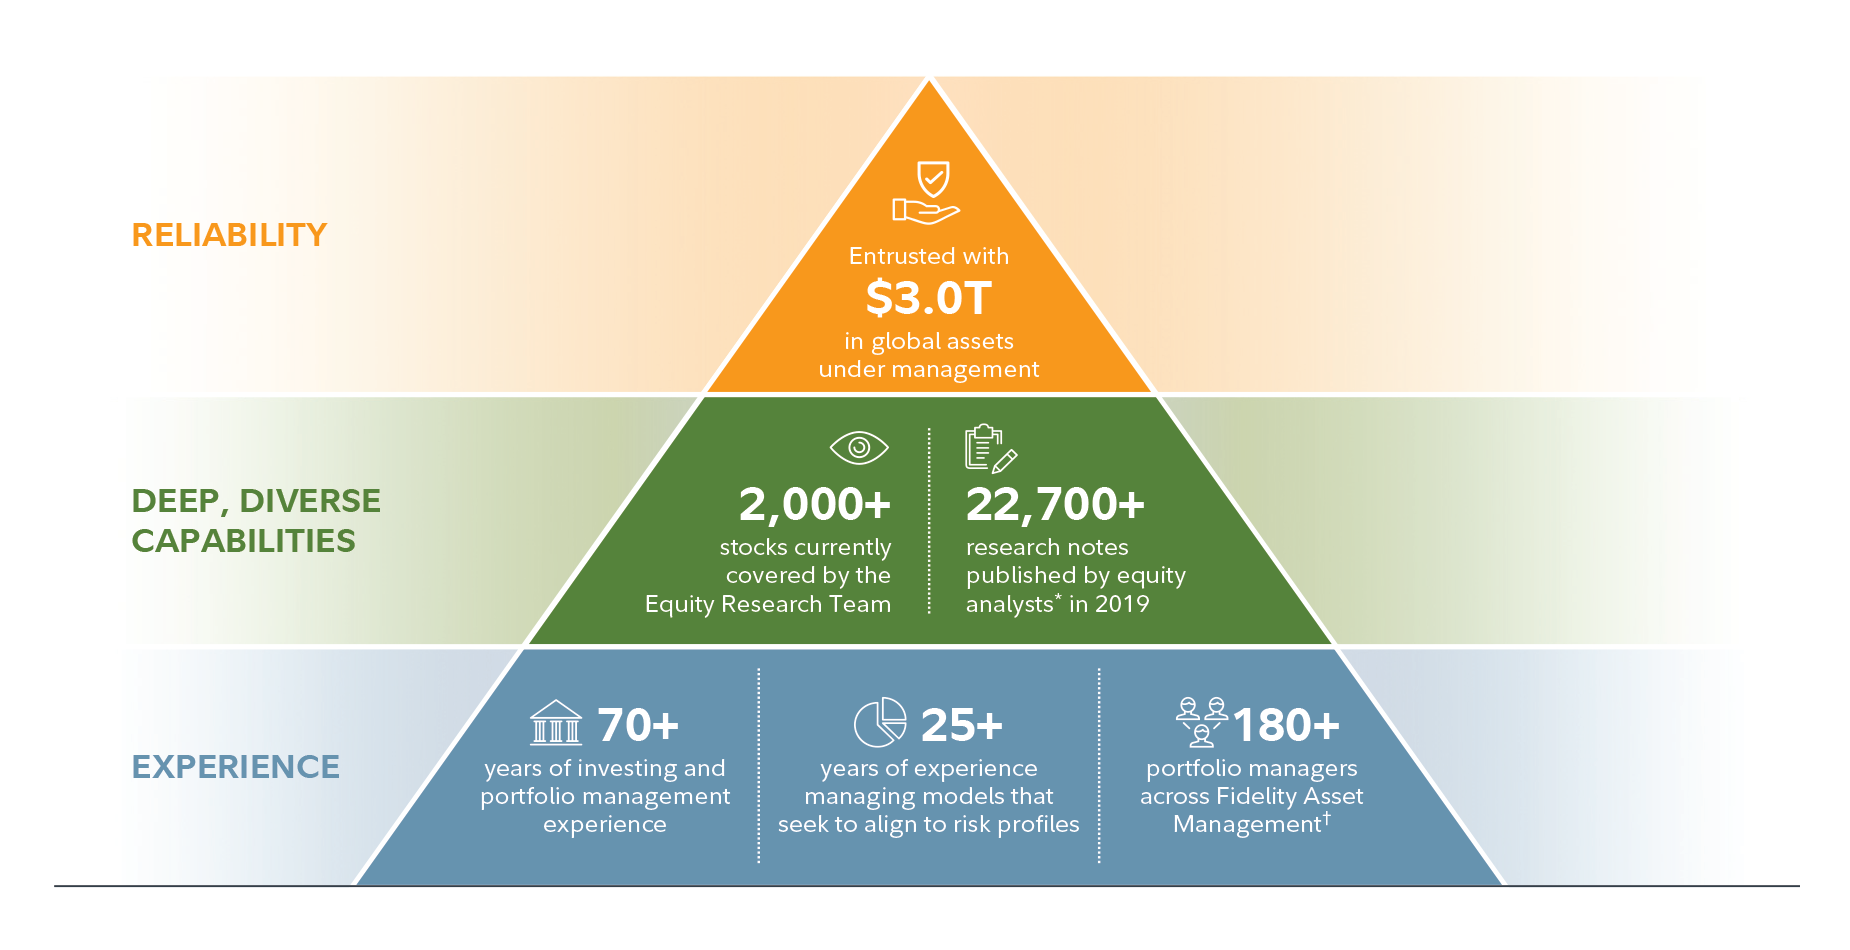 Pyramid depicts the elements of the power behind Fidelity's active management. At the top of the pyramid is reliability; the firm has $3 trillion in global assets under management. Next is Deep, Diverse Capabilities; there are currently 2,000+ stocks covered by the equity research team and 22,700 research notes published by equity analysts in 2018. Next level down is experience; Fidelity Management and Research Company has a 70+ year of investing and portfolio management experience, 25+ years of managing models that seek to align to risk profiles, and 180+ portfolio managers across Fidelity Asset Management.